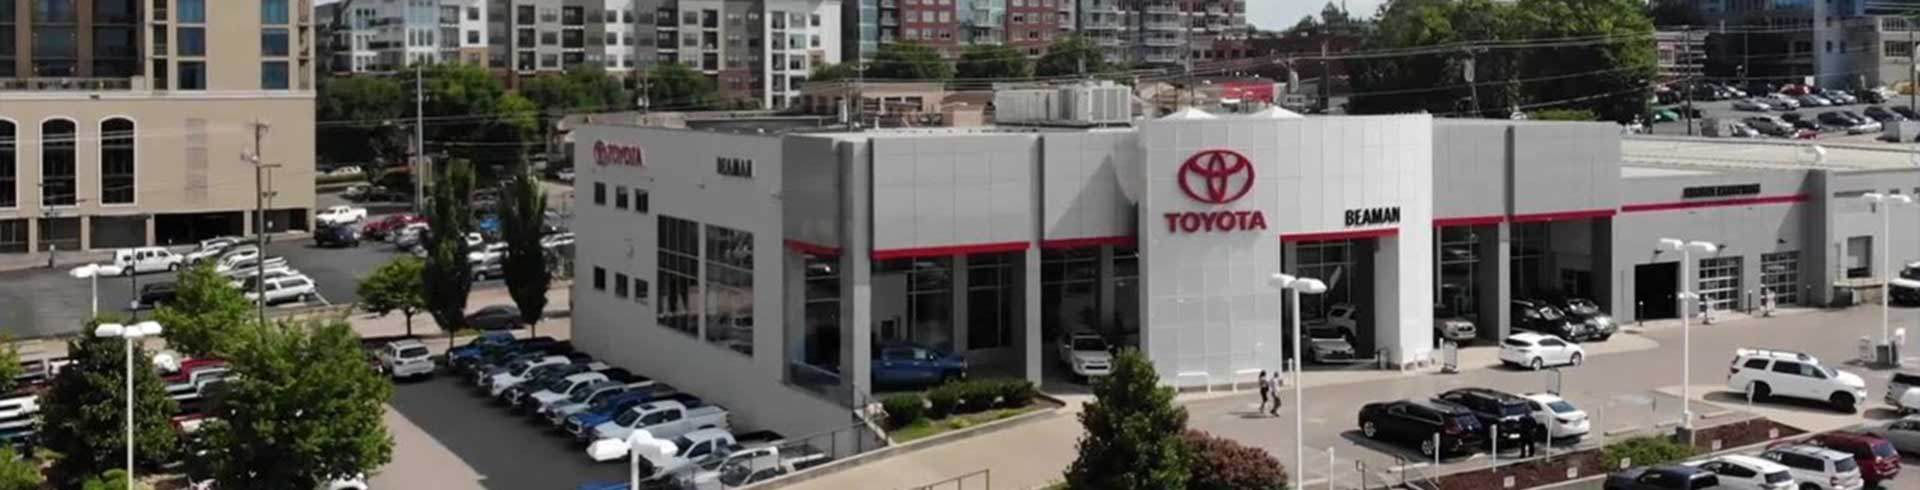 About Our Toyota Dealership in Nashville, TN